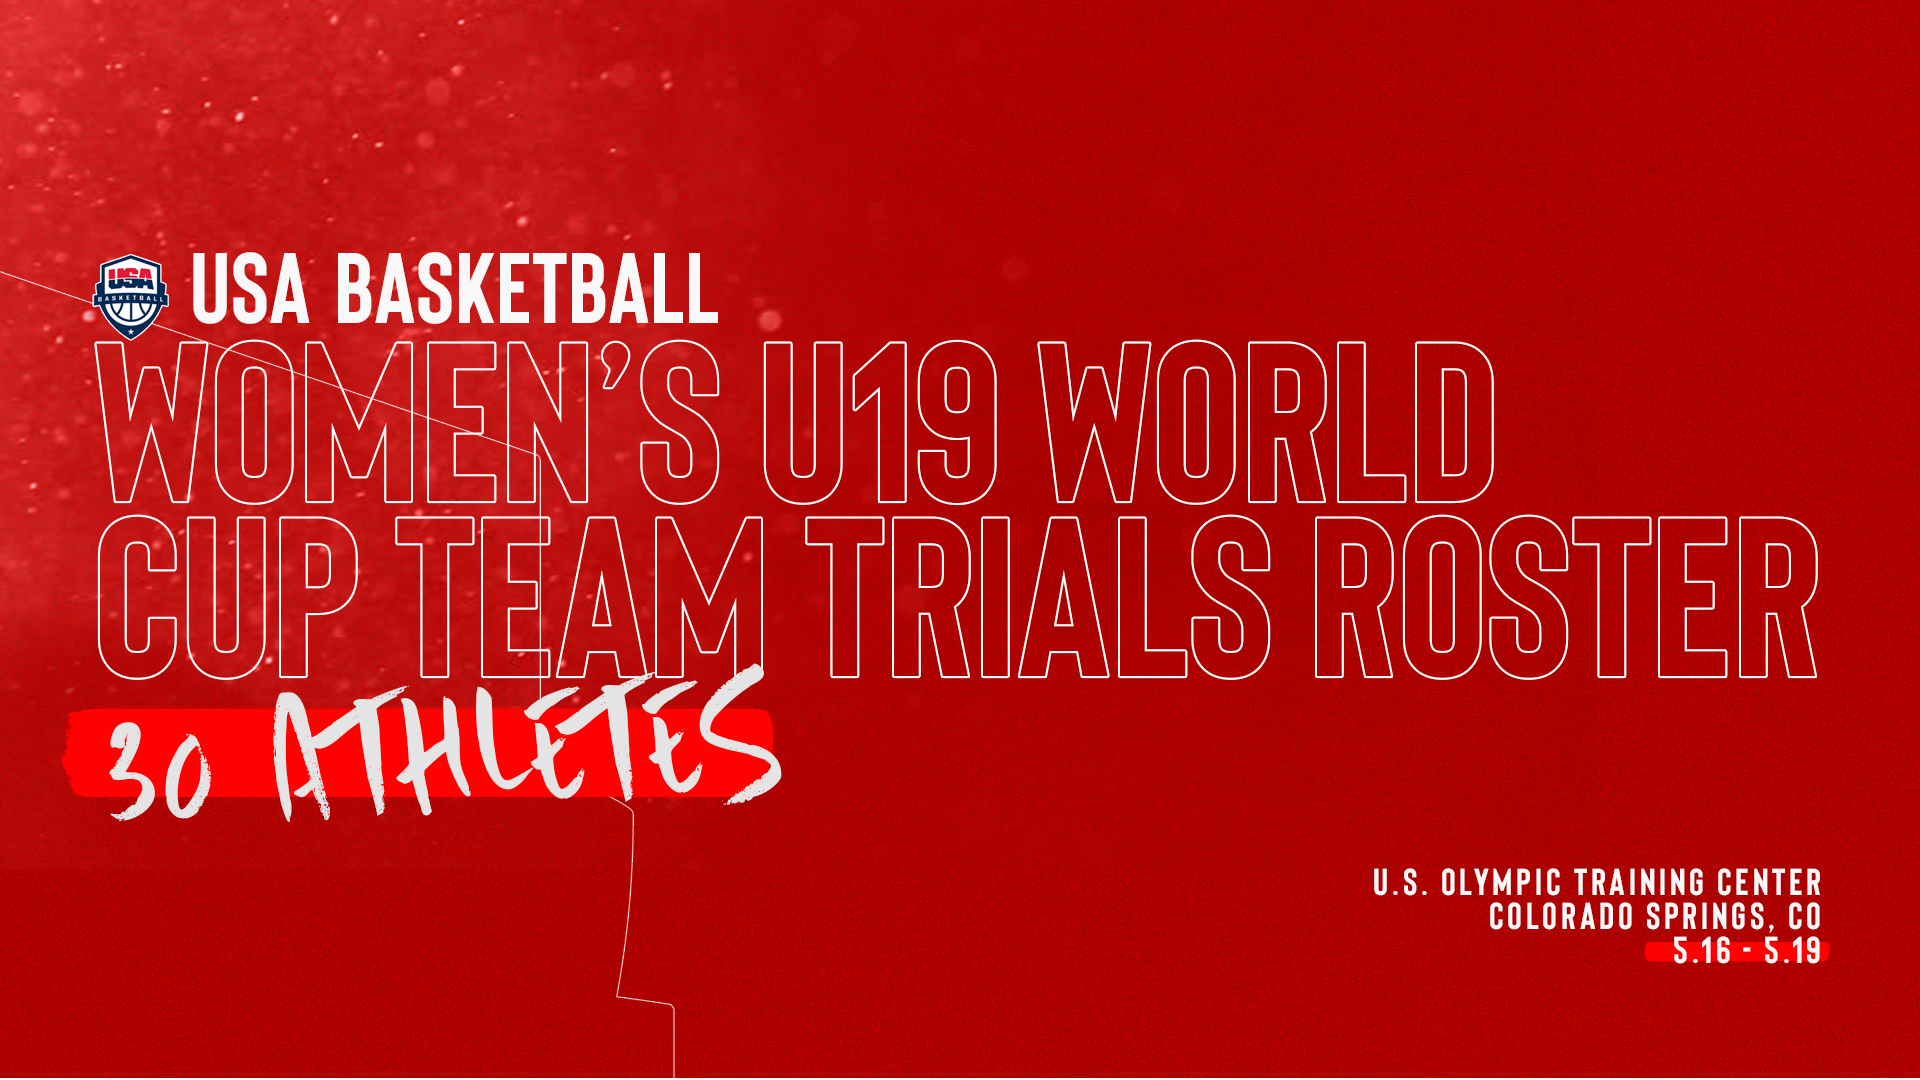 30 Athletes Set to Take Part in 2019 USA Women's U19 World